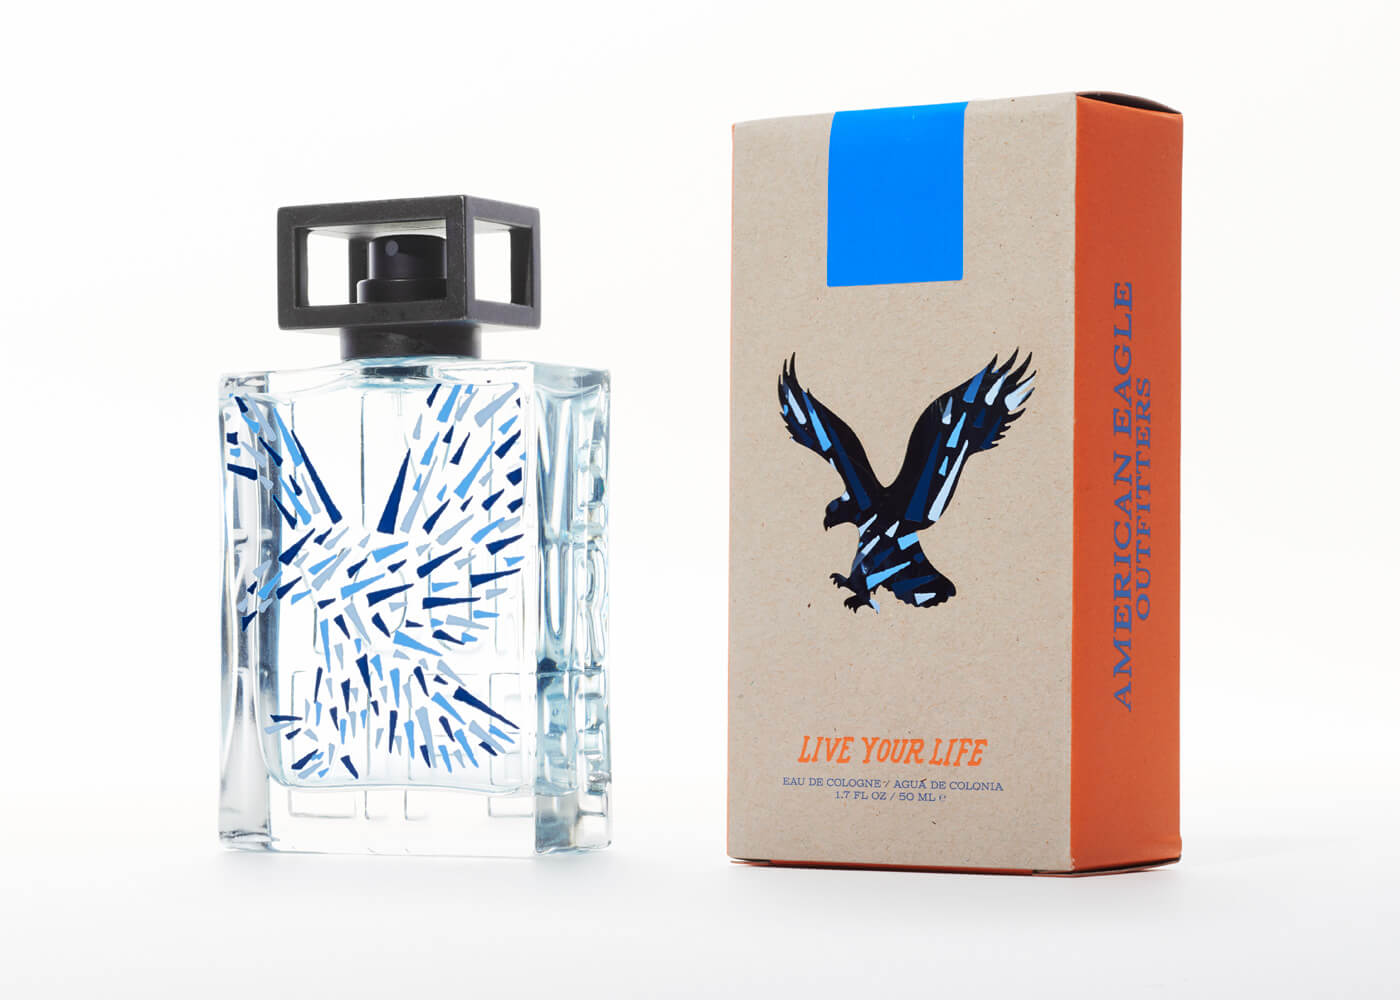 Analyser-et-decrypter-les-typographies-en-packaging-american-eagle